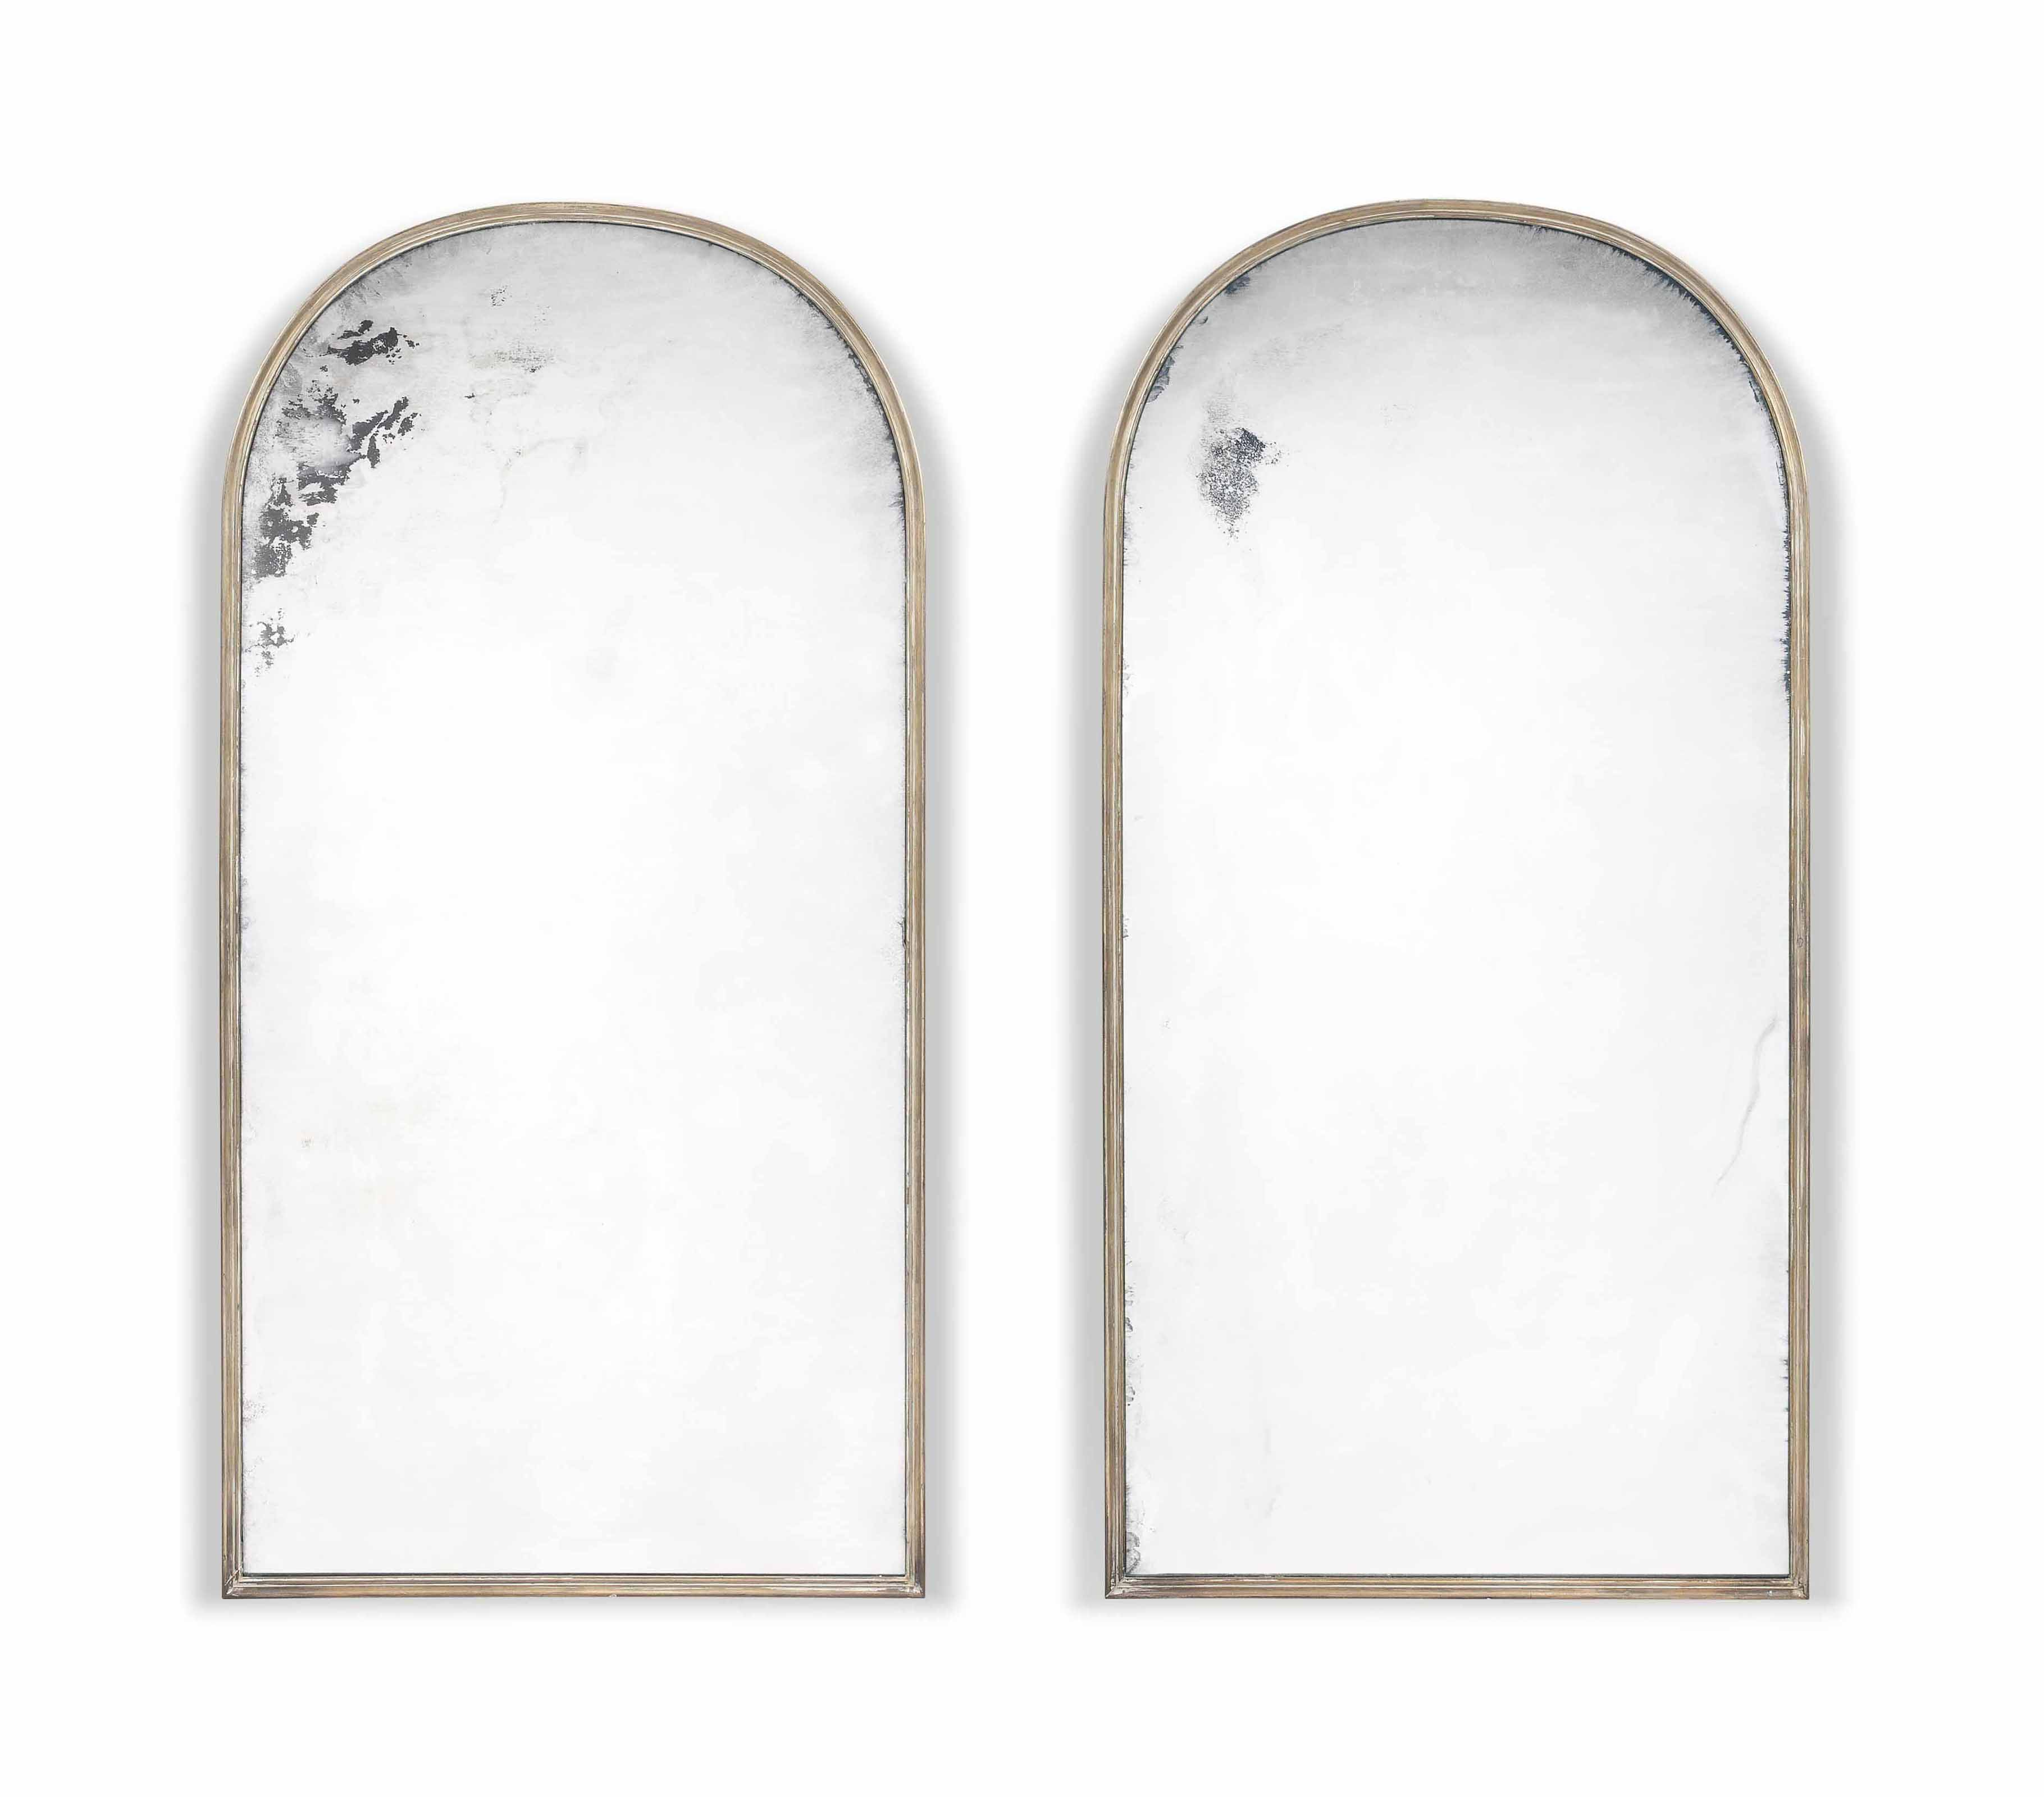 A PAIR OF BRASS-FRAMED MIRRORS